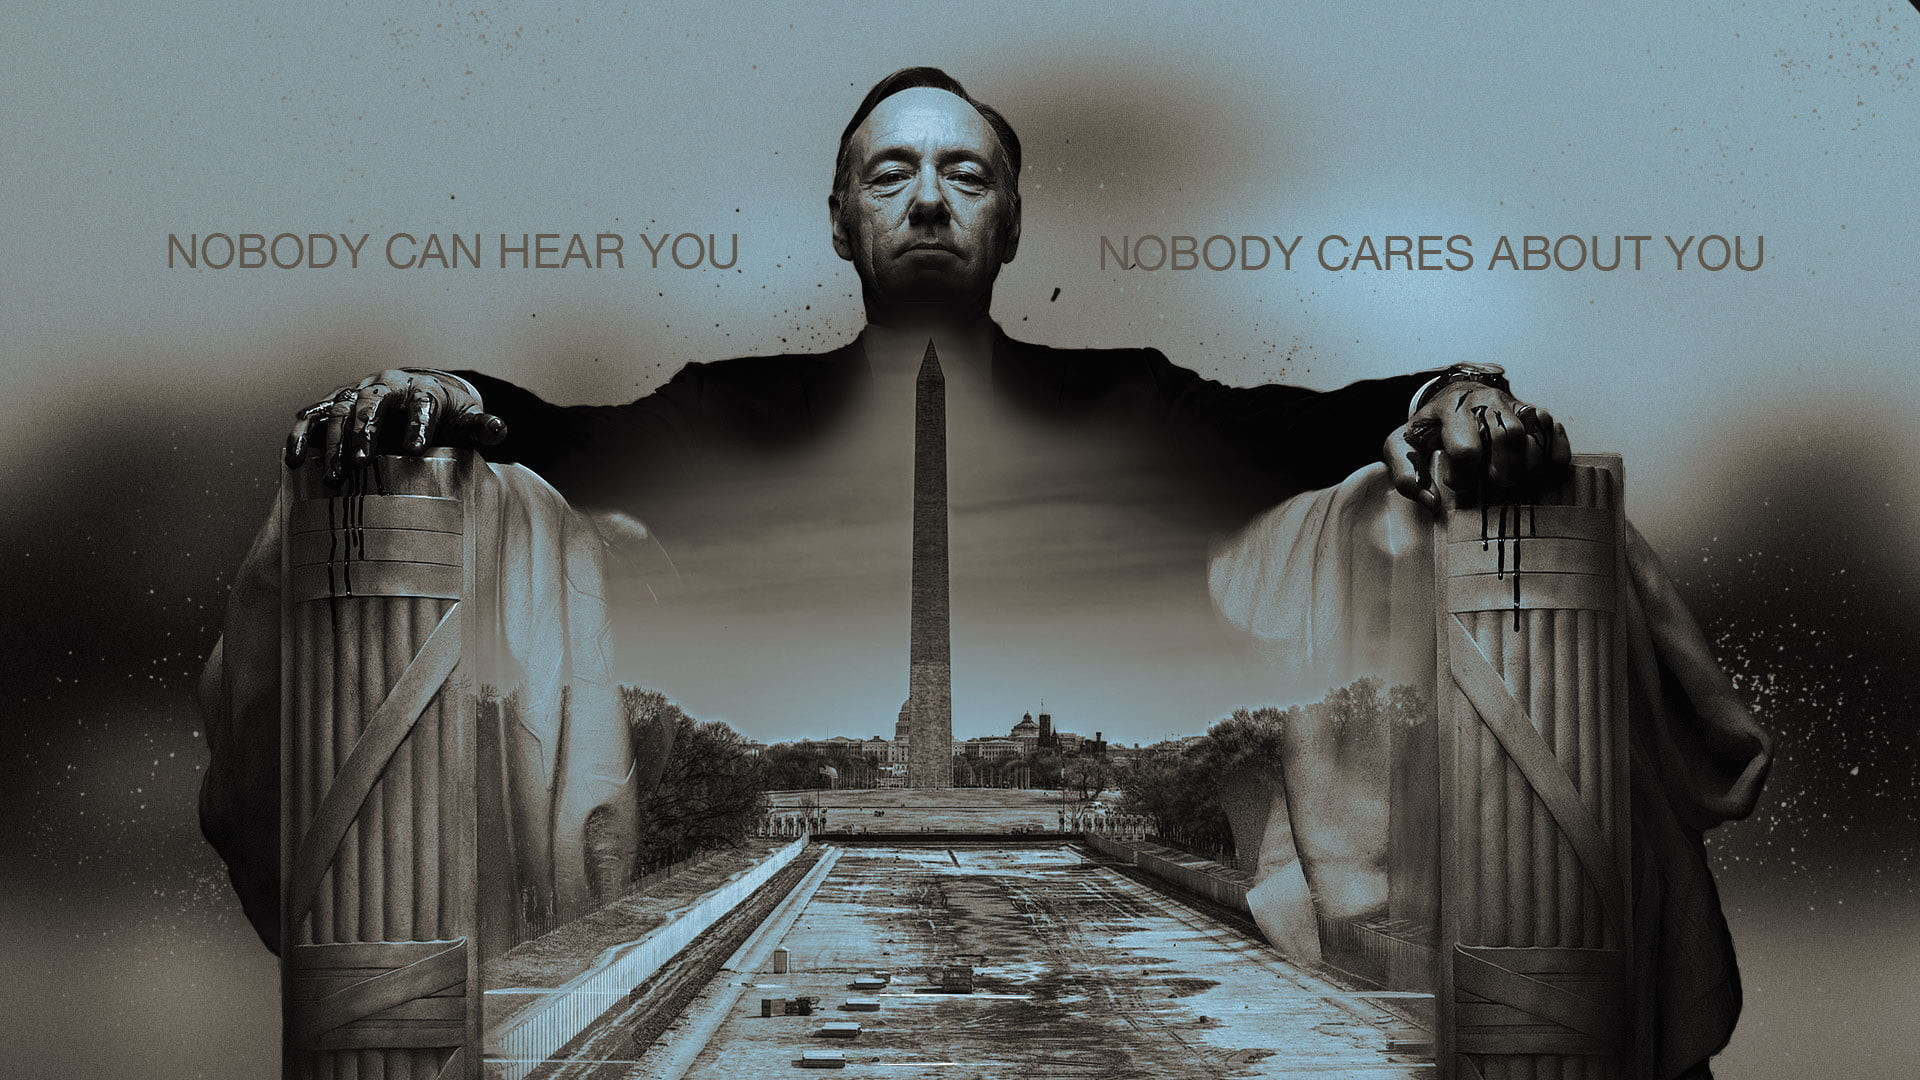 Res: 1920x1080, nobody can hear you, nobody cares about you Lincoln Memorial wallpaper,  House of Cards